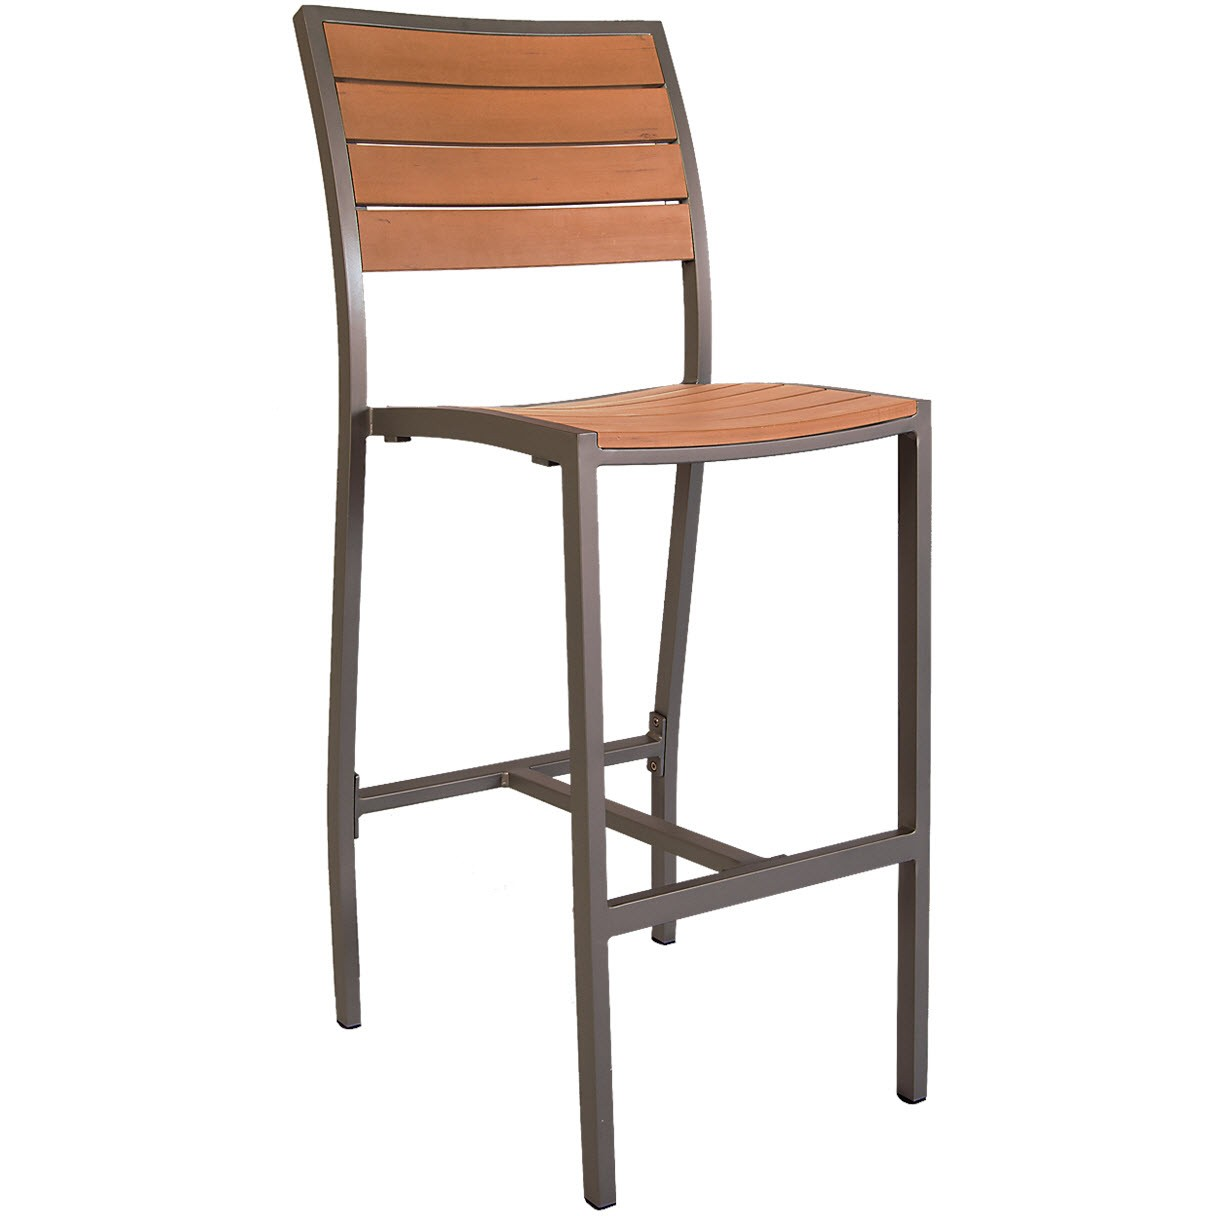 Aluminum Rust Colored Patio Bar Stool With Plastic Teak